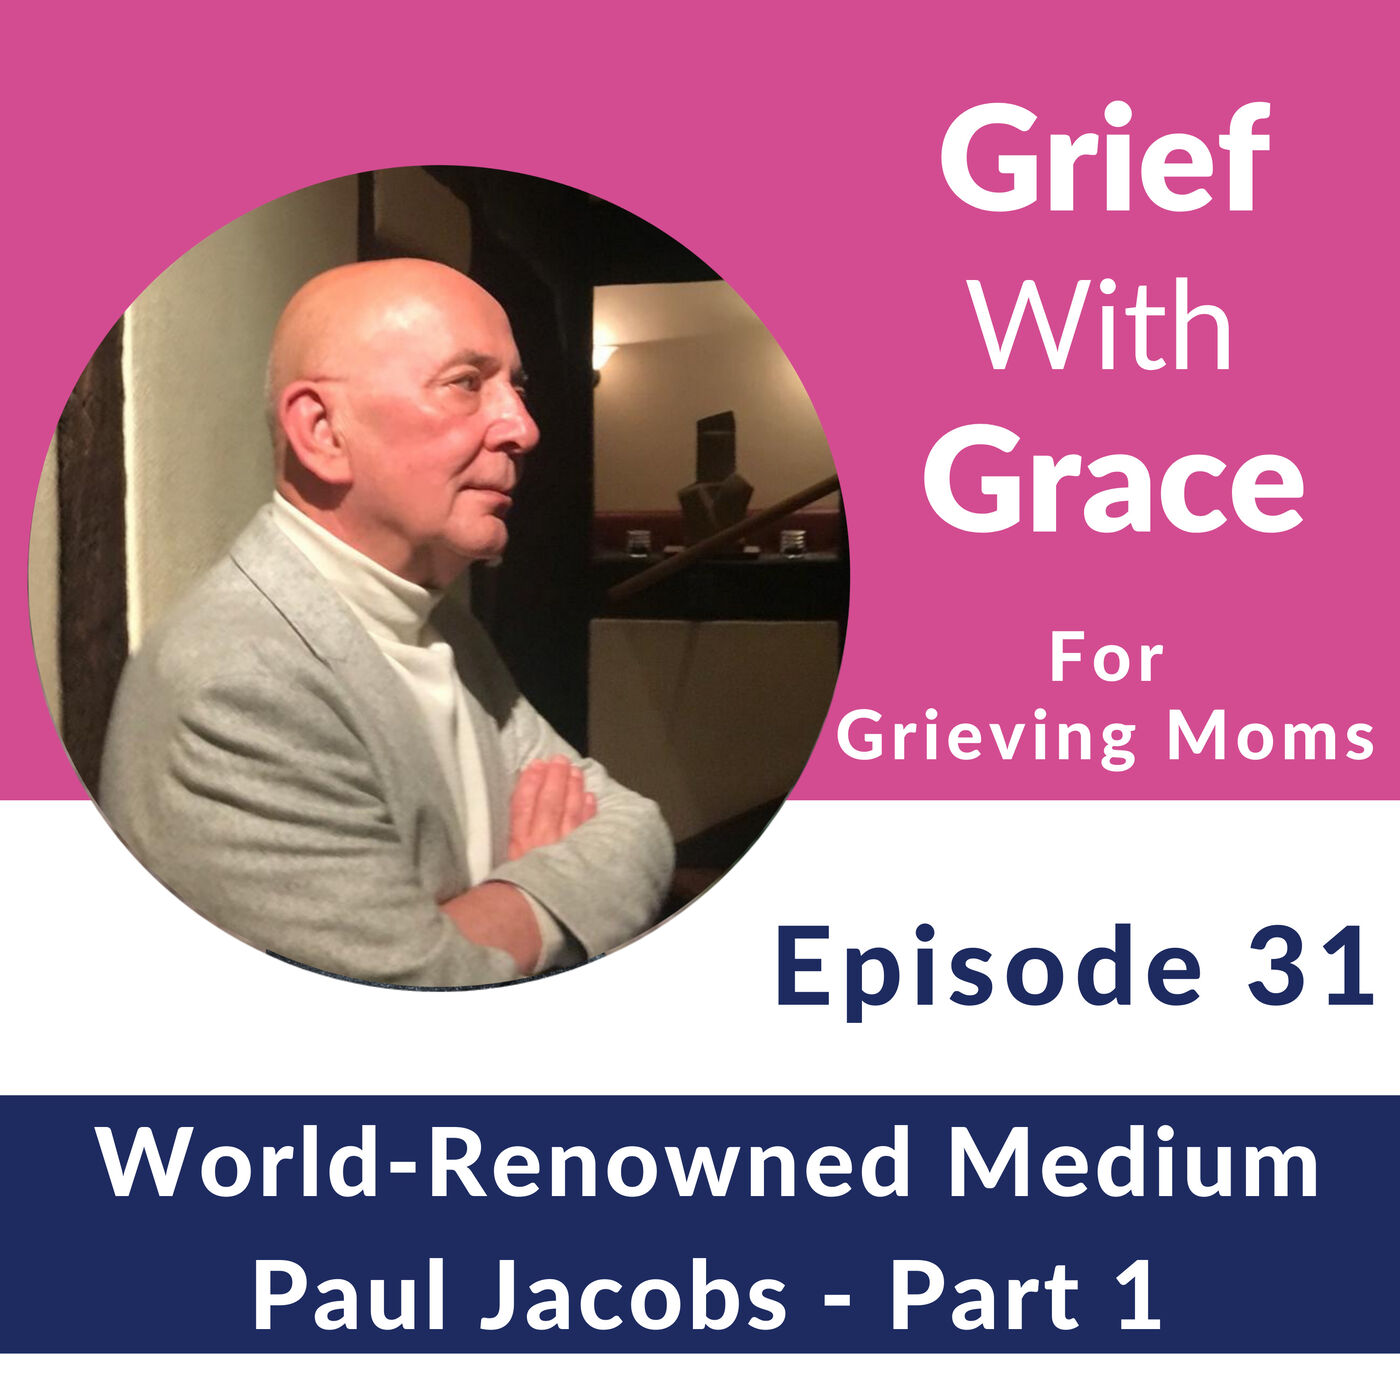 31. A Conversation With World-Renowned Medium Paul Jacobs - Part 1